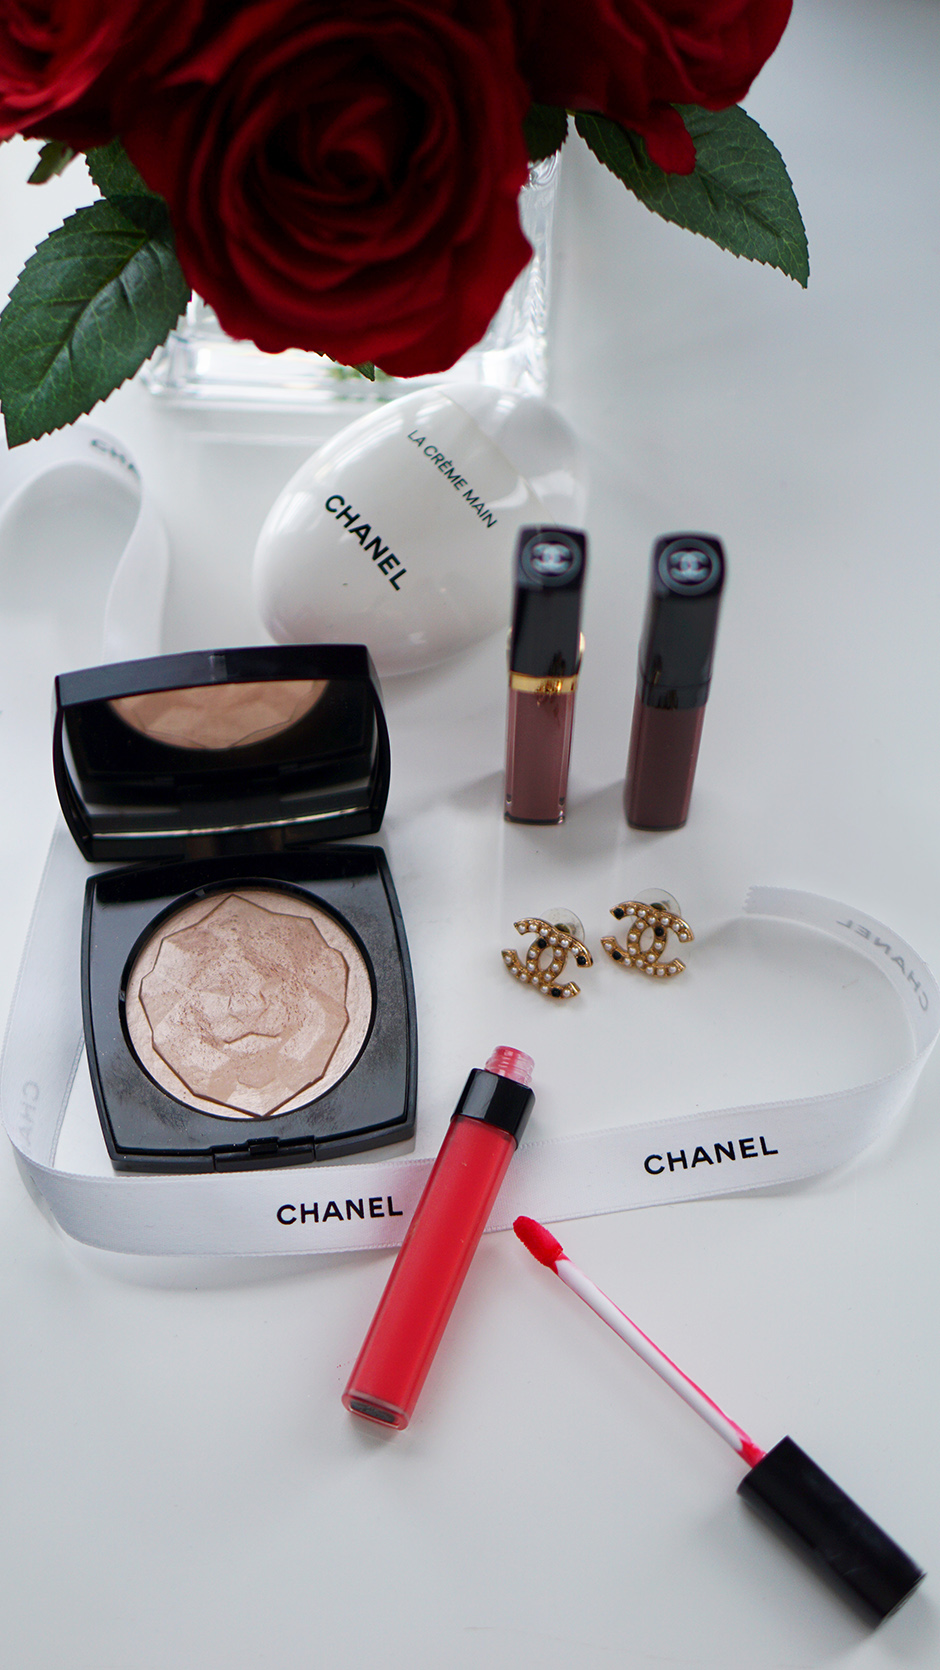 CHANEL Beauty Products Highlighter, Rouge Coco Lip Blush, Hydrating Lip and Cheek Sheer Colour in Teasing Pink and Burning Berry #ad #beautyproducts #truered #chanelbeauty #chanelpartner #redlipstick #mattelipstick #fashioninspiration #valentinesday #valentinesbeauty #beautyinspo #beautydisplay #handcream #luxurybeauty